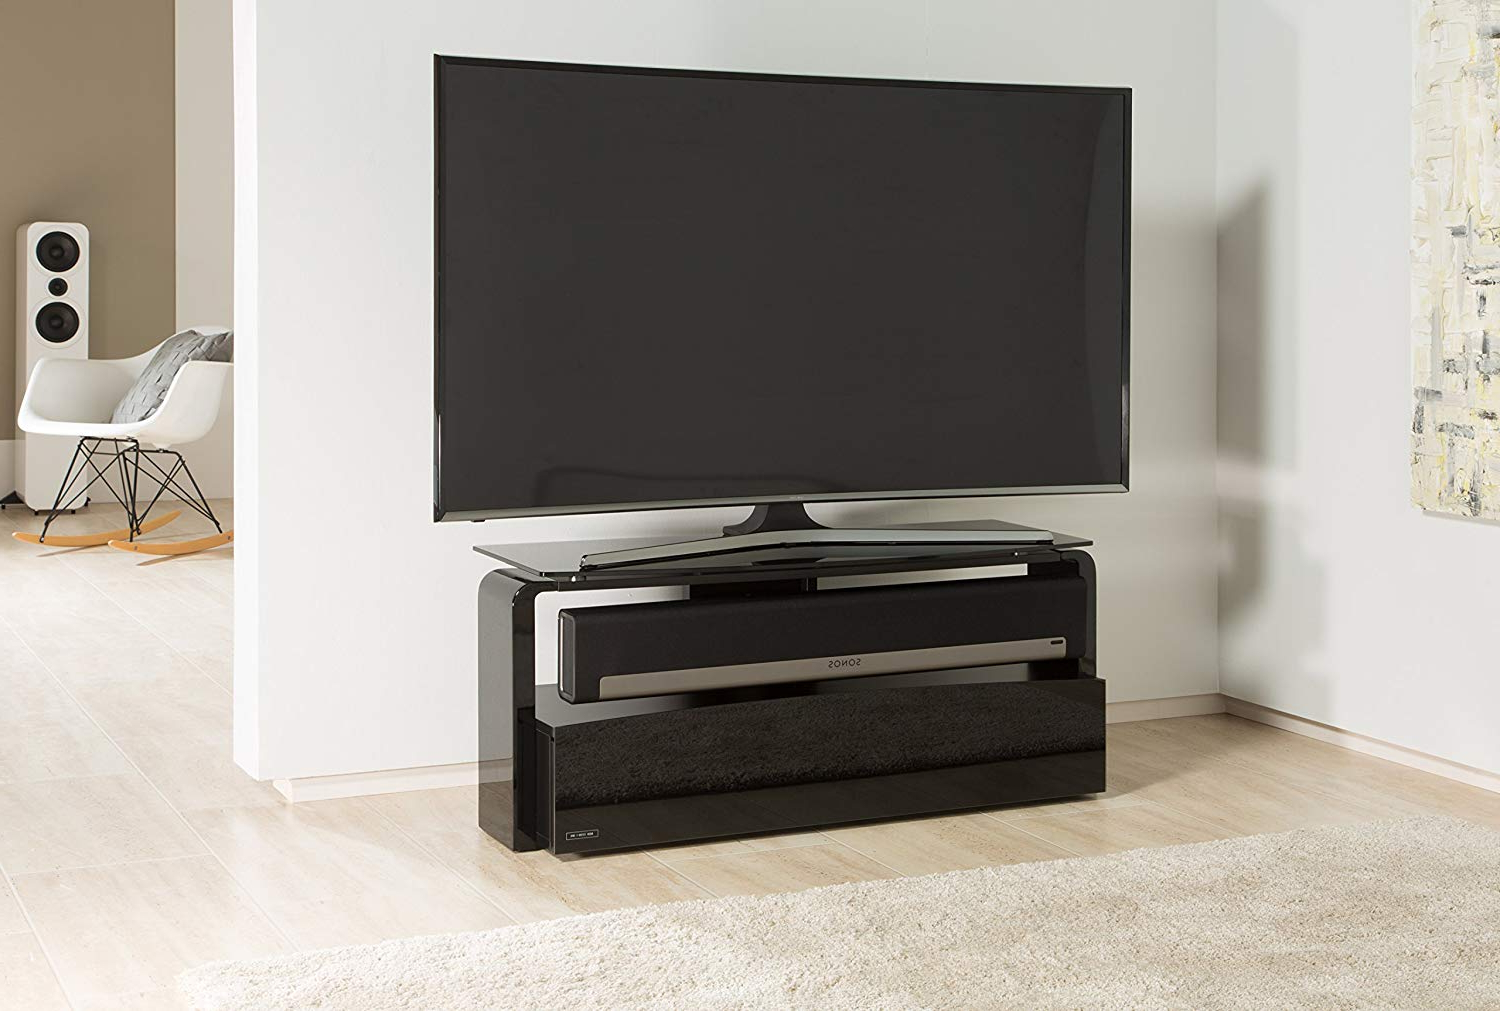 Alphason As9001 Black Sonos Playbar Tv Stand For Up To 45: Amazon.co Regarding Most Current Sonos Tv Stands (Gallery 17 of 20)